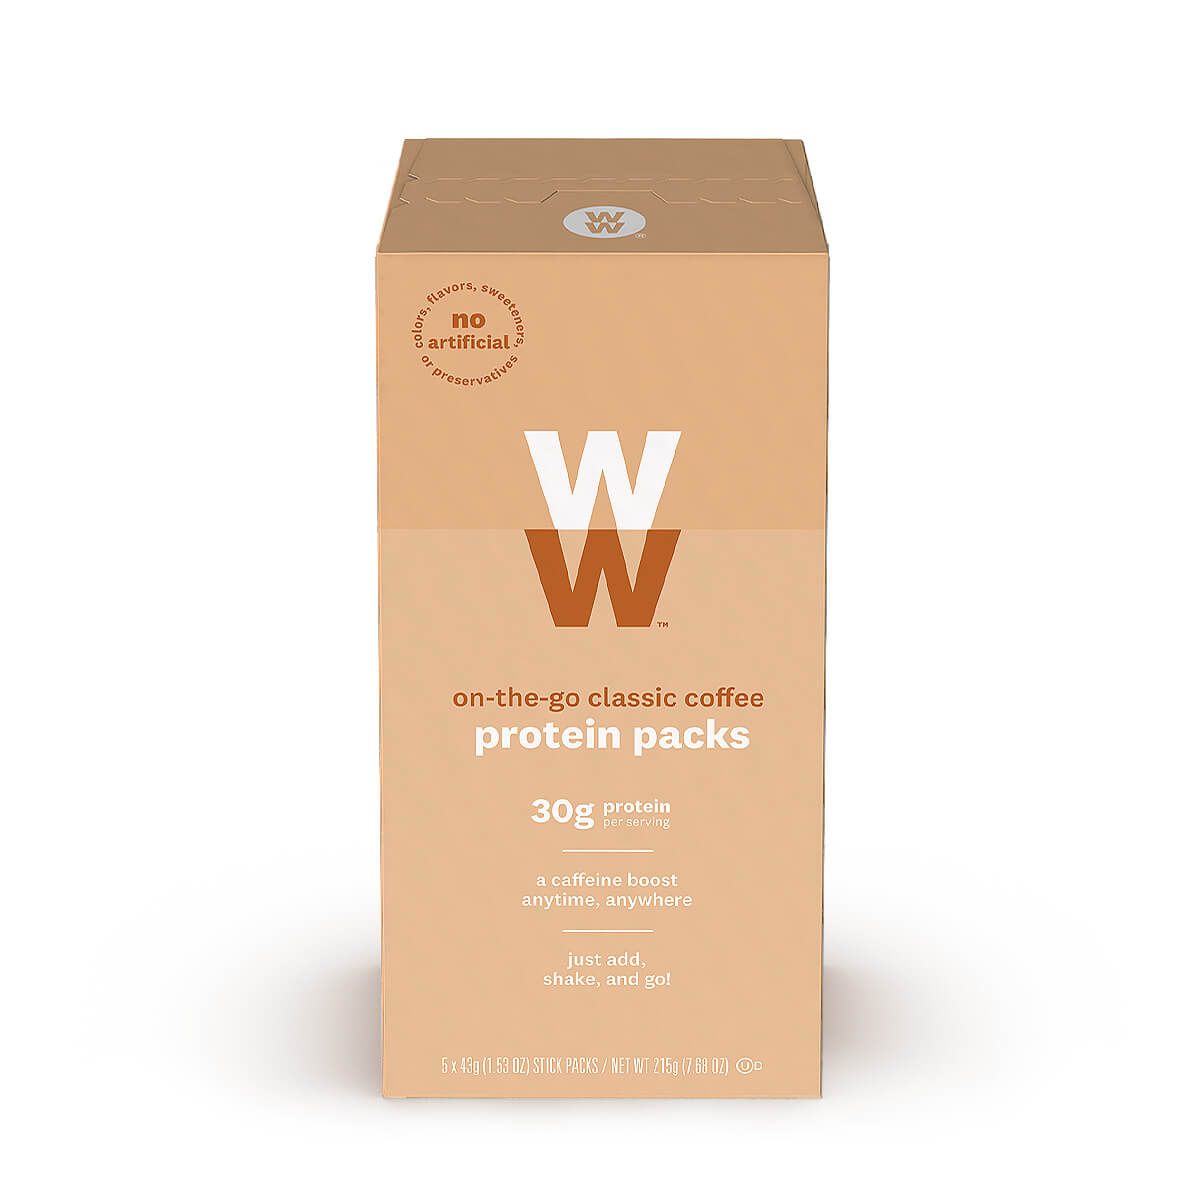 On the Go Classic Coffee Protein Pack